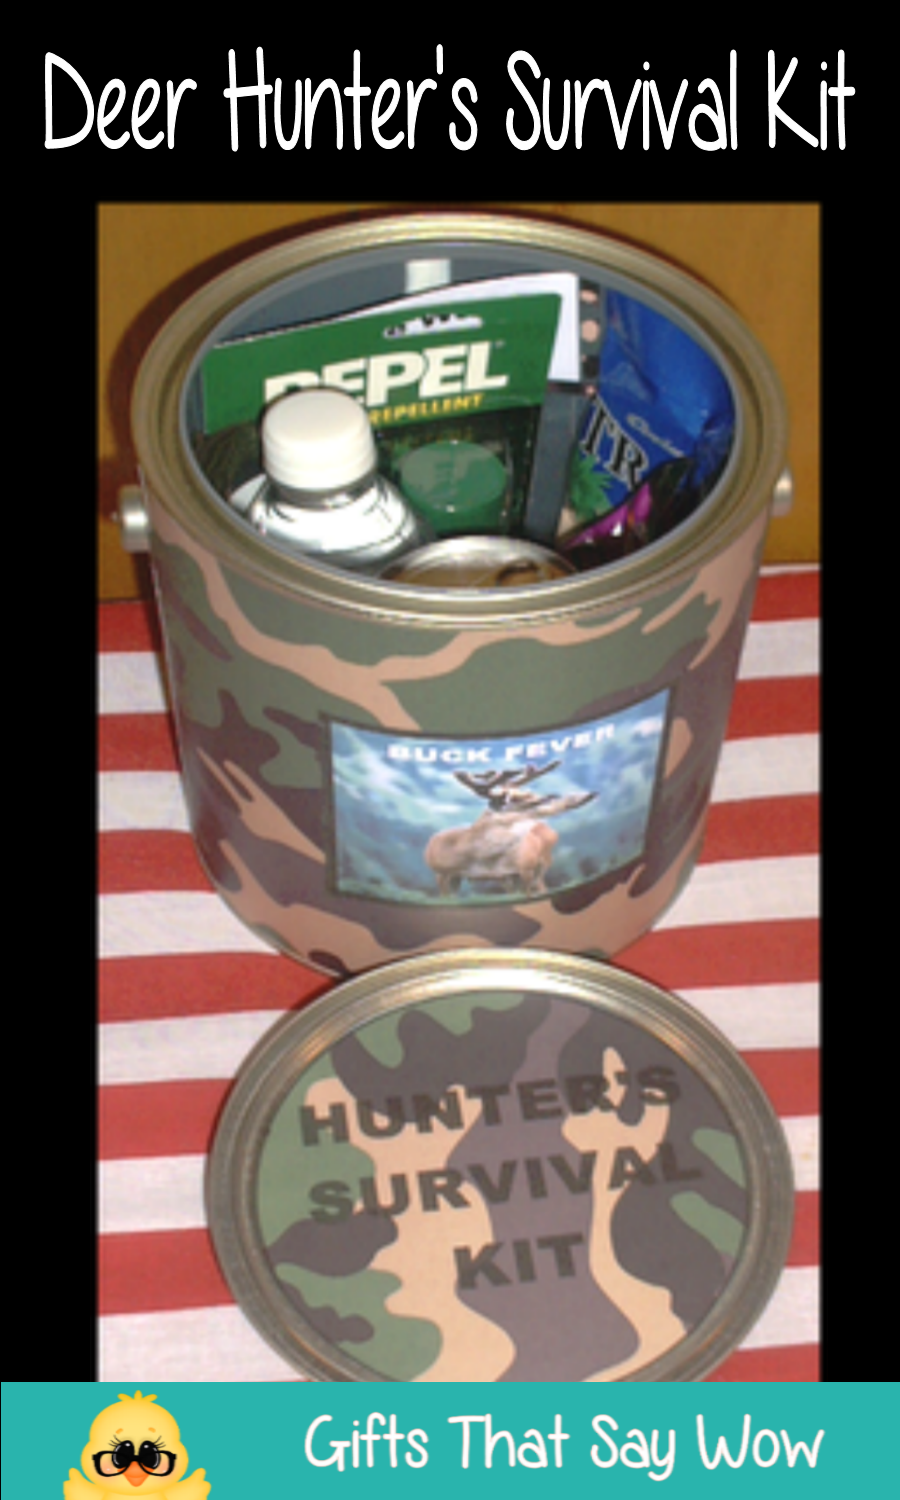 Gifts that say wow fun crafts and gift ideas hunter 39 s for Hunting and fishing gifts